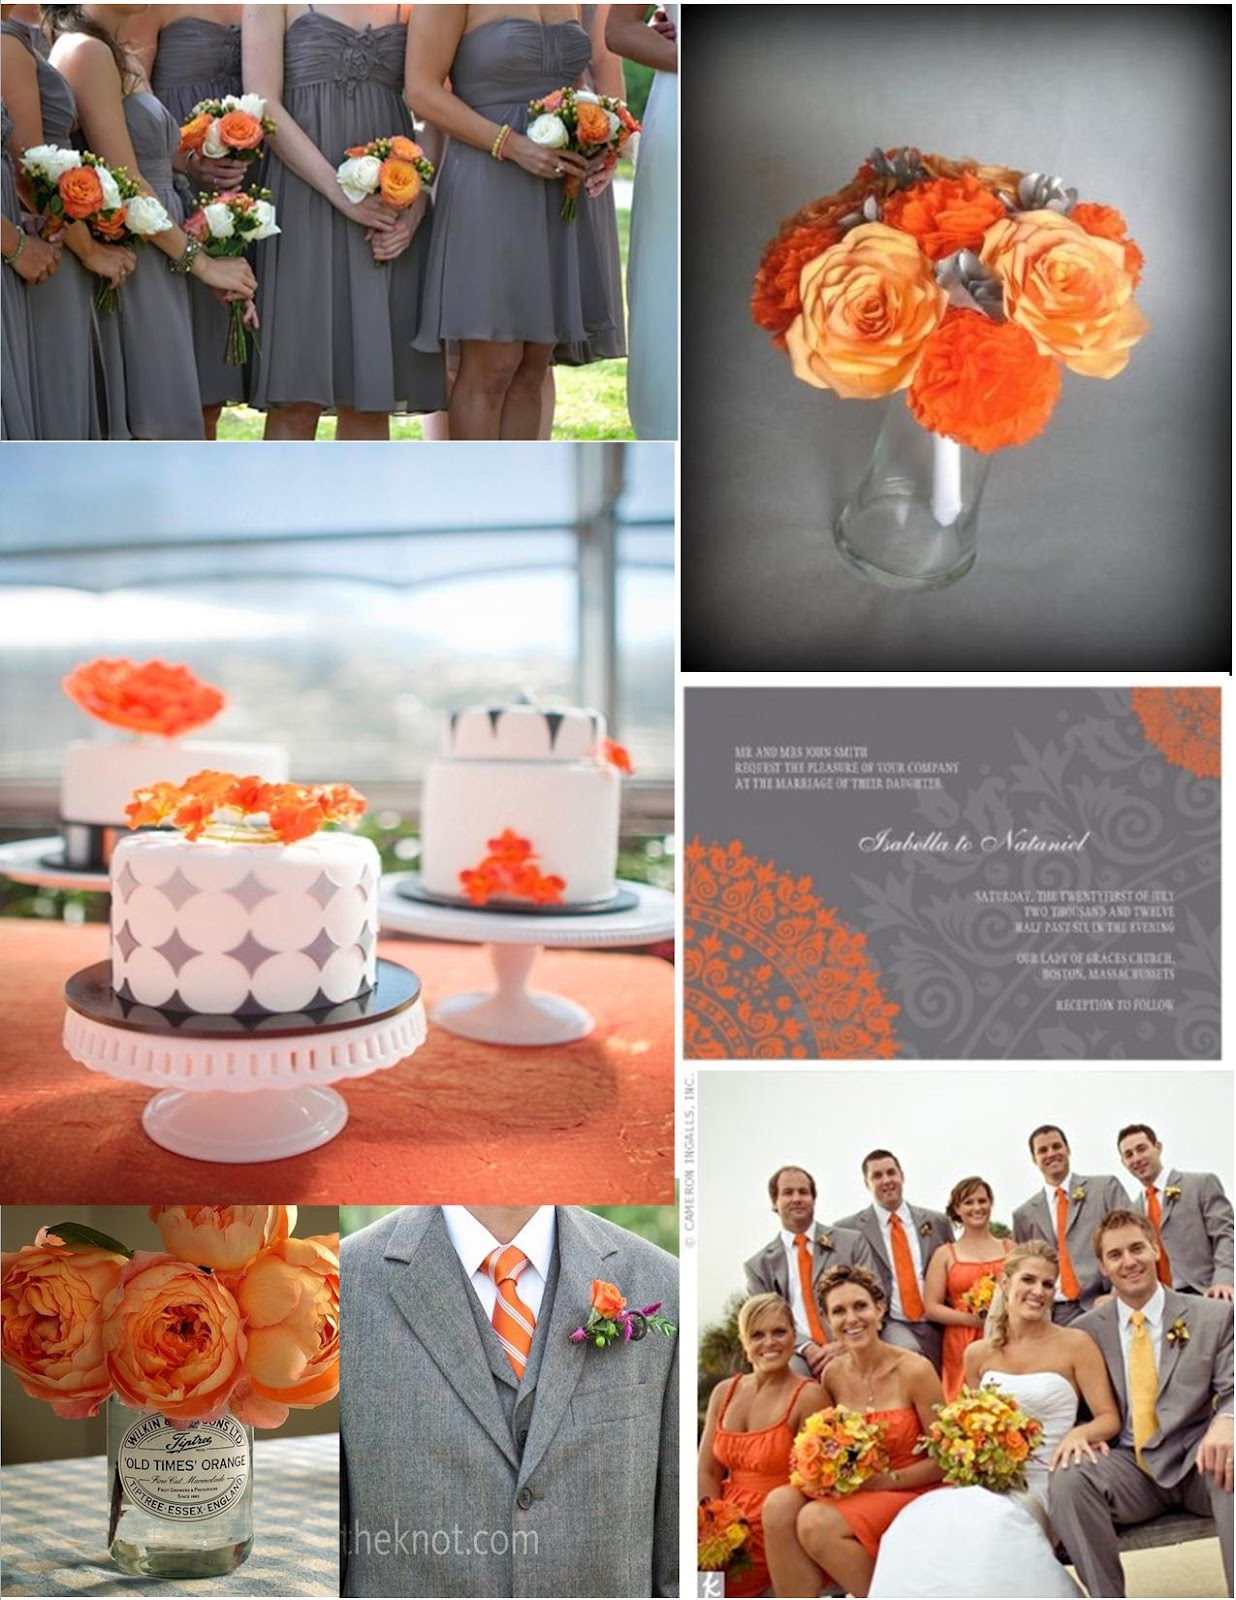 The Bees Times Three Wedding Wednesday Orange and Gray Color Baord